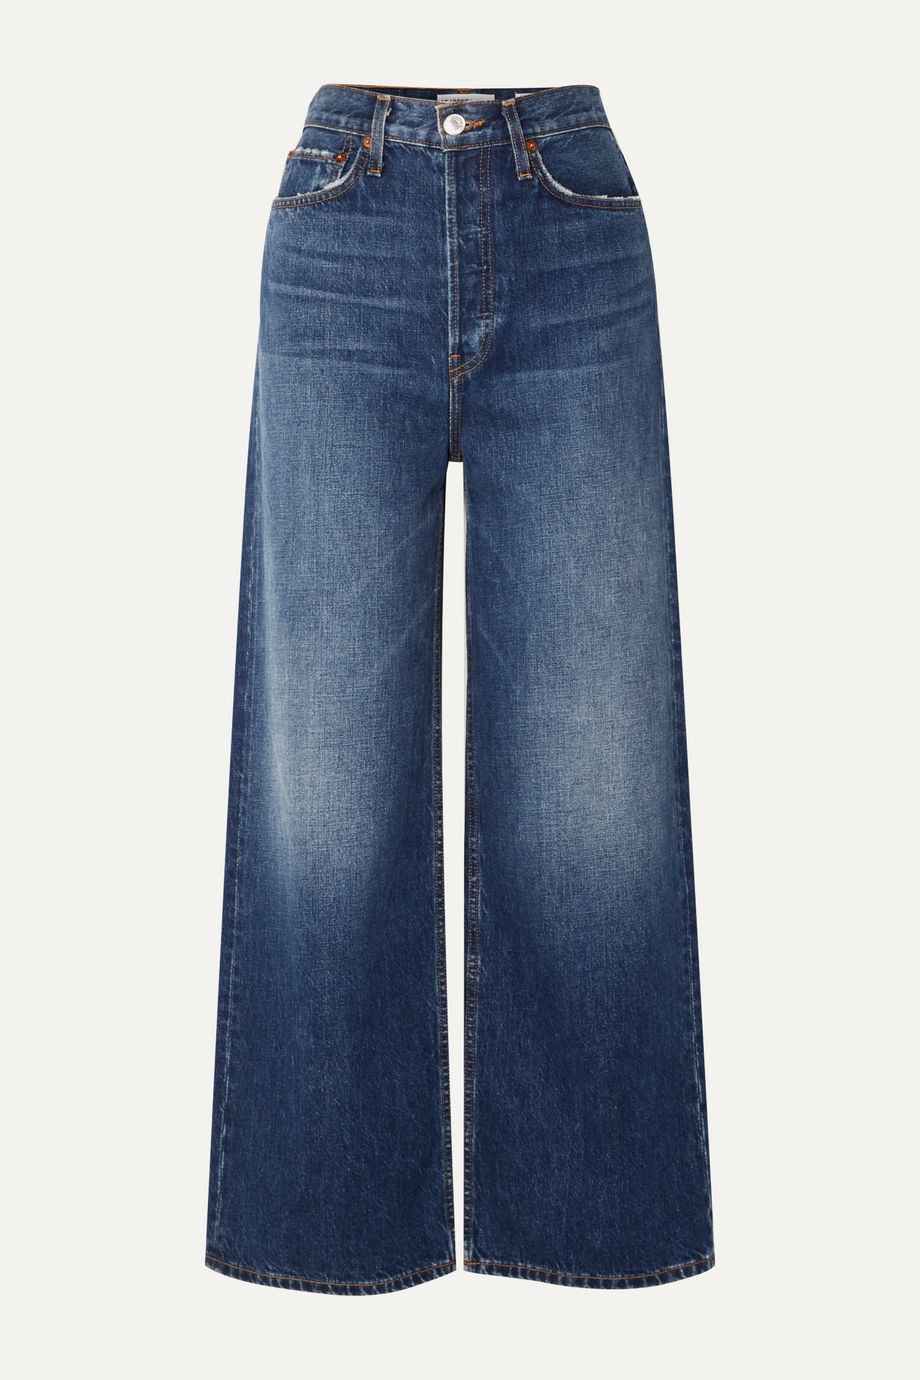 RE/DONE 60s Extreme cropped distressed high-rise wide-leg jeans